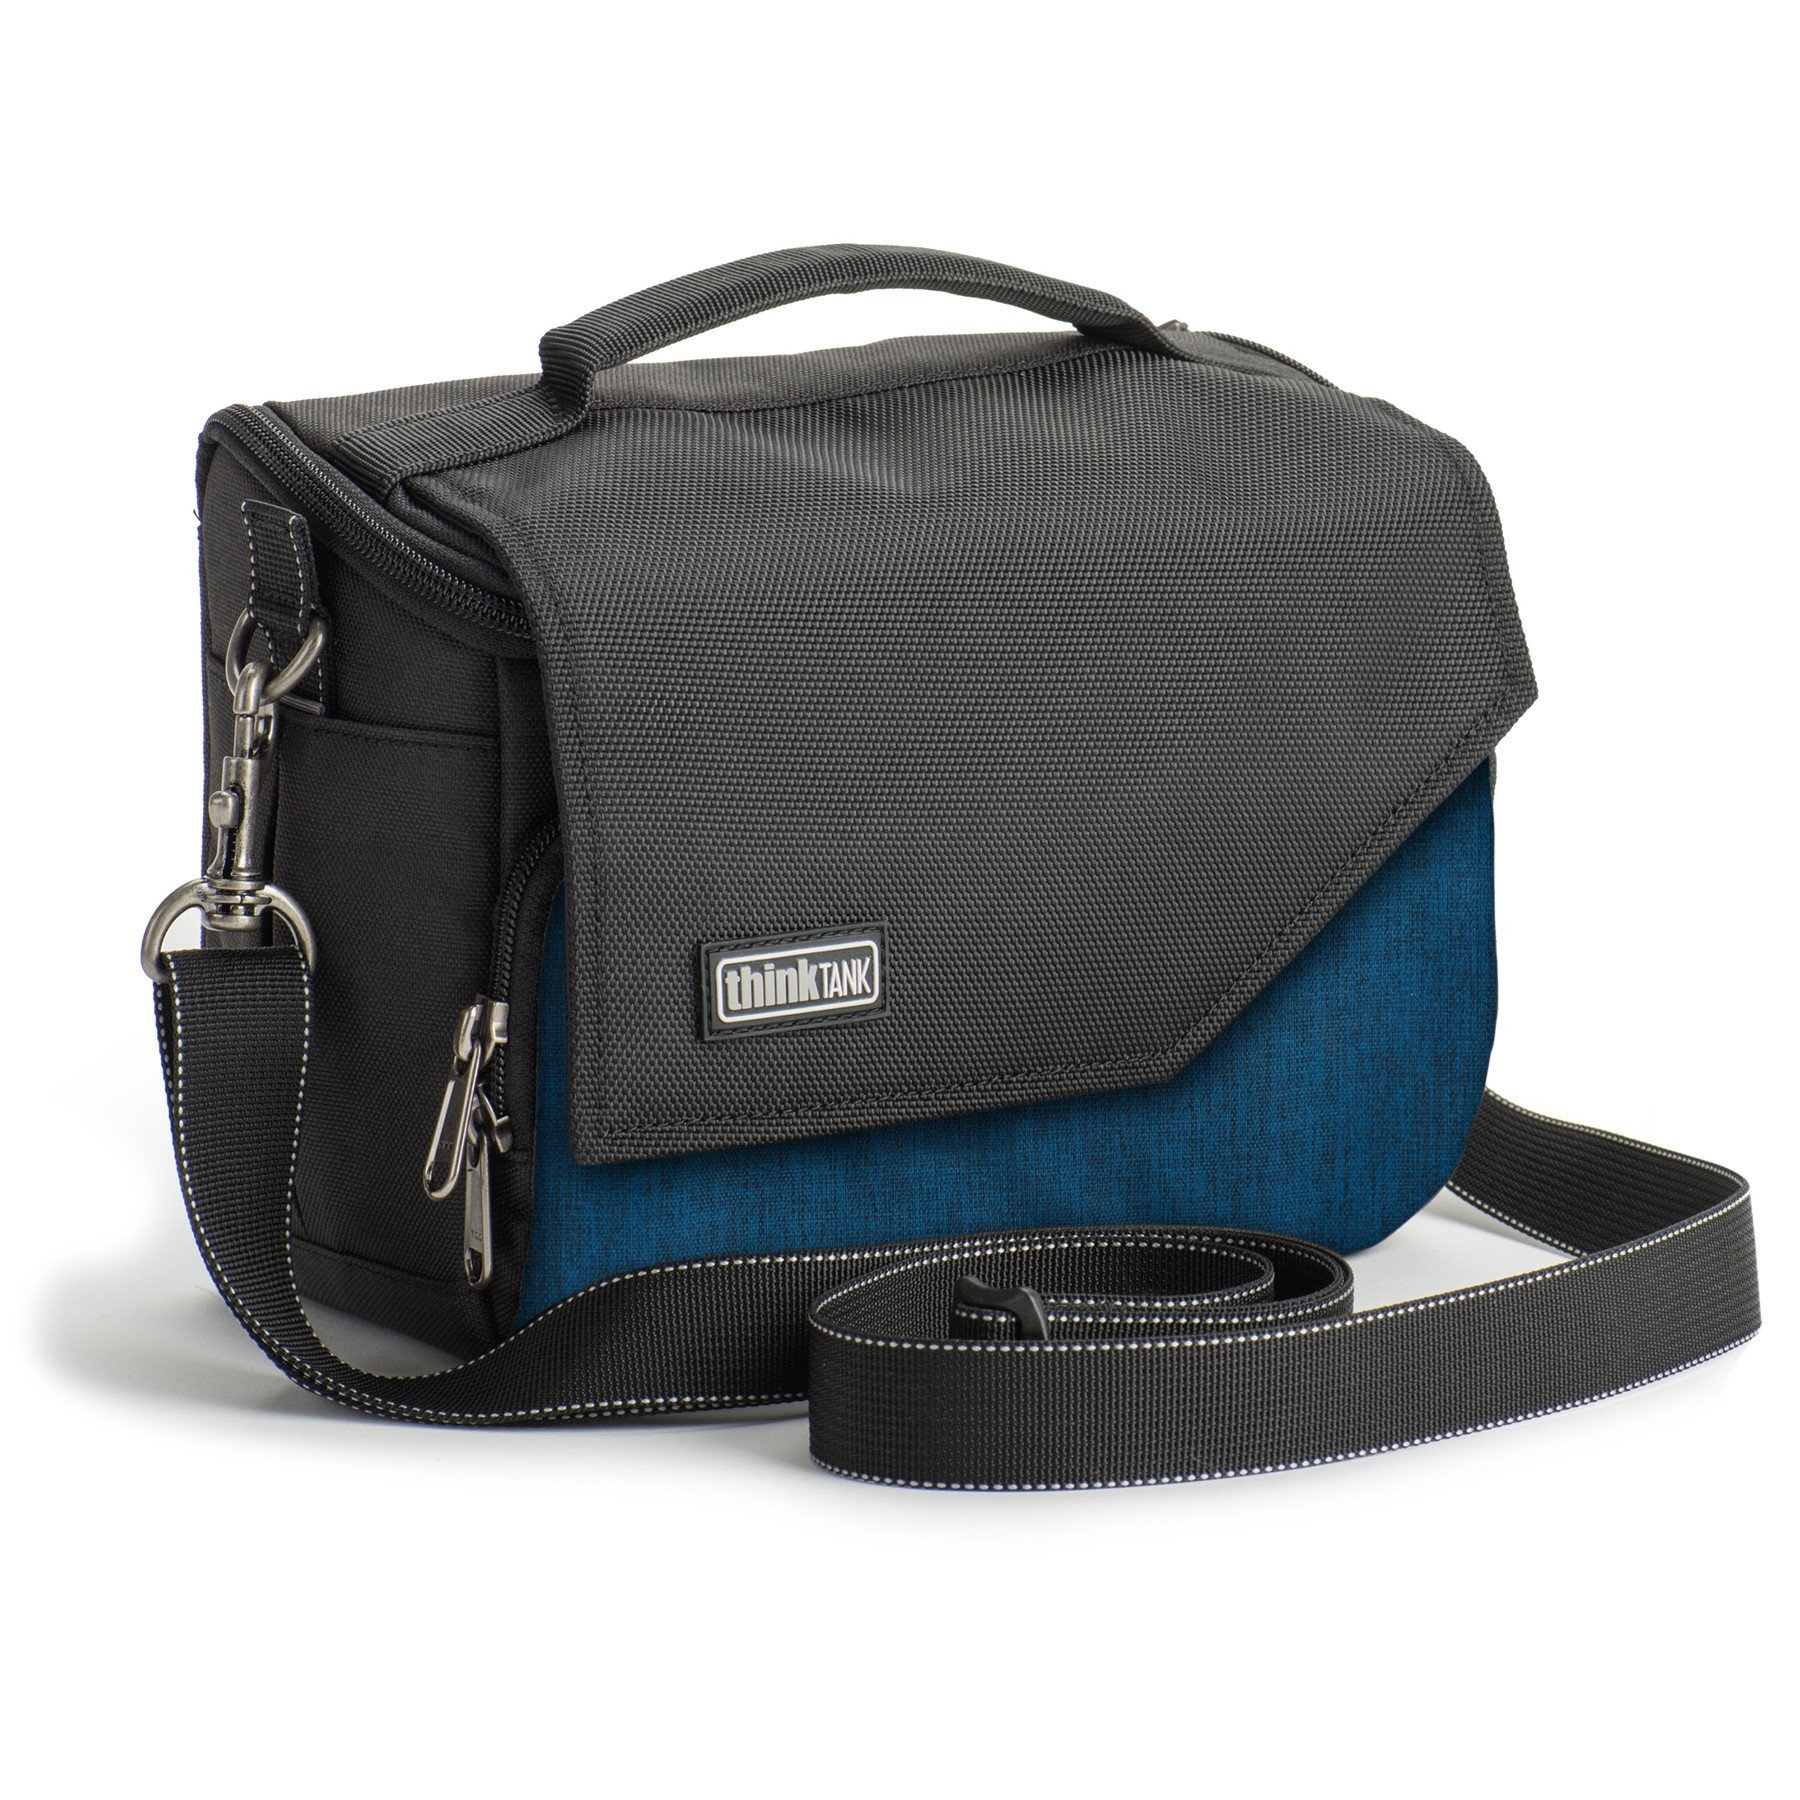 Think Tank Photo Mirrorless Mover 20 Camera Bag (Dark Blue) by Think Tank